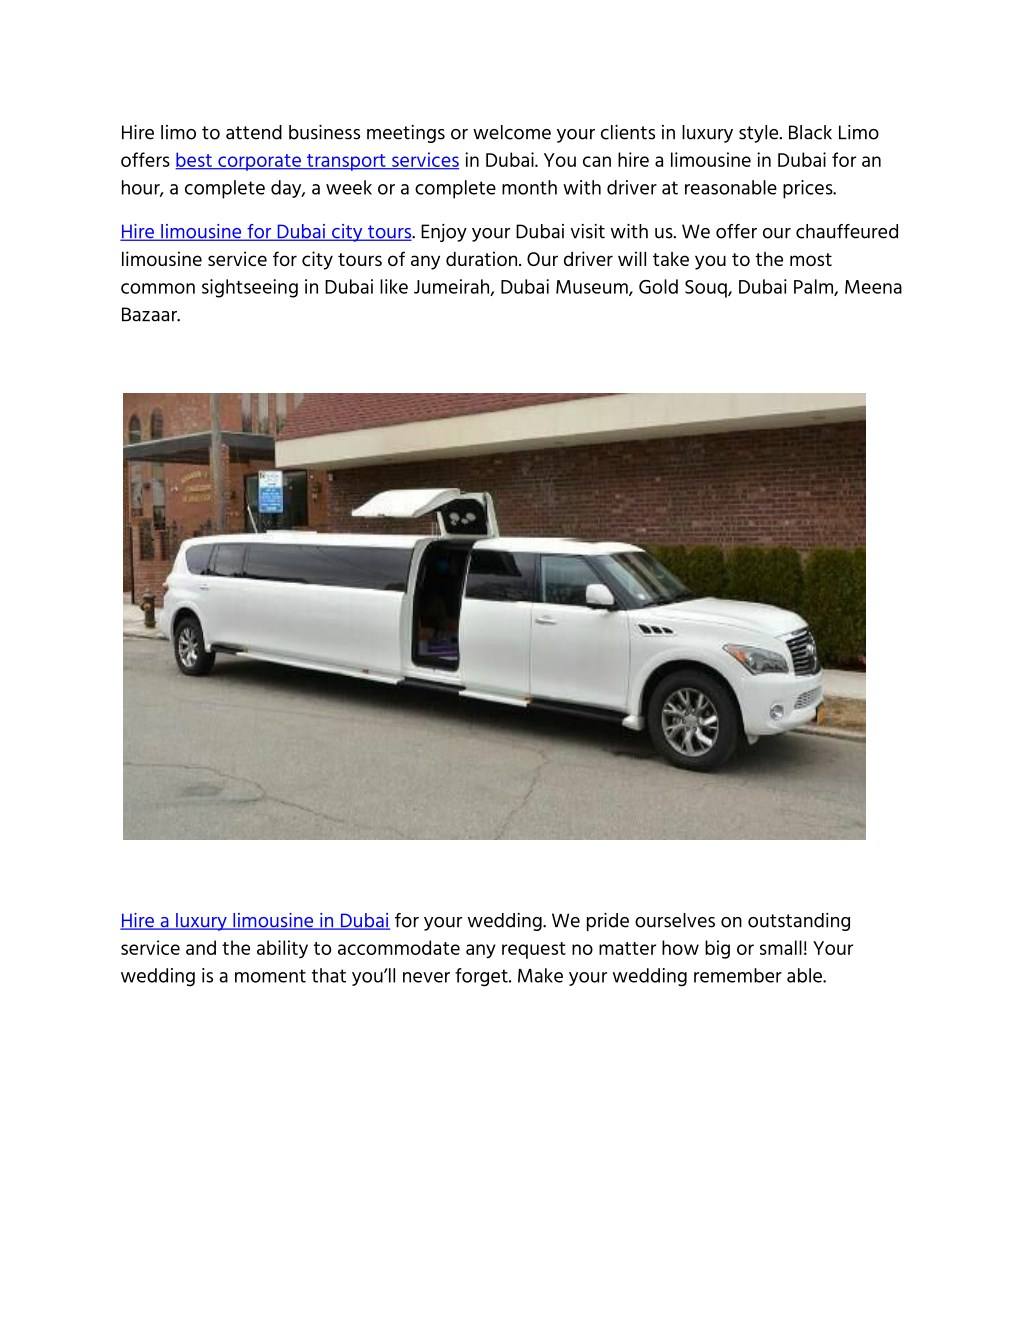 PPT - Black Limo Service Dubai PowerPoint Presentation - ID:7986287